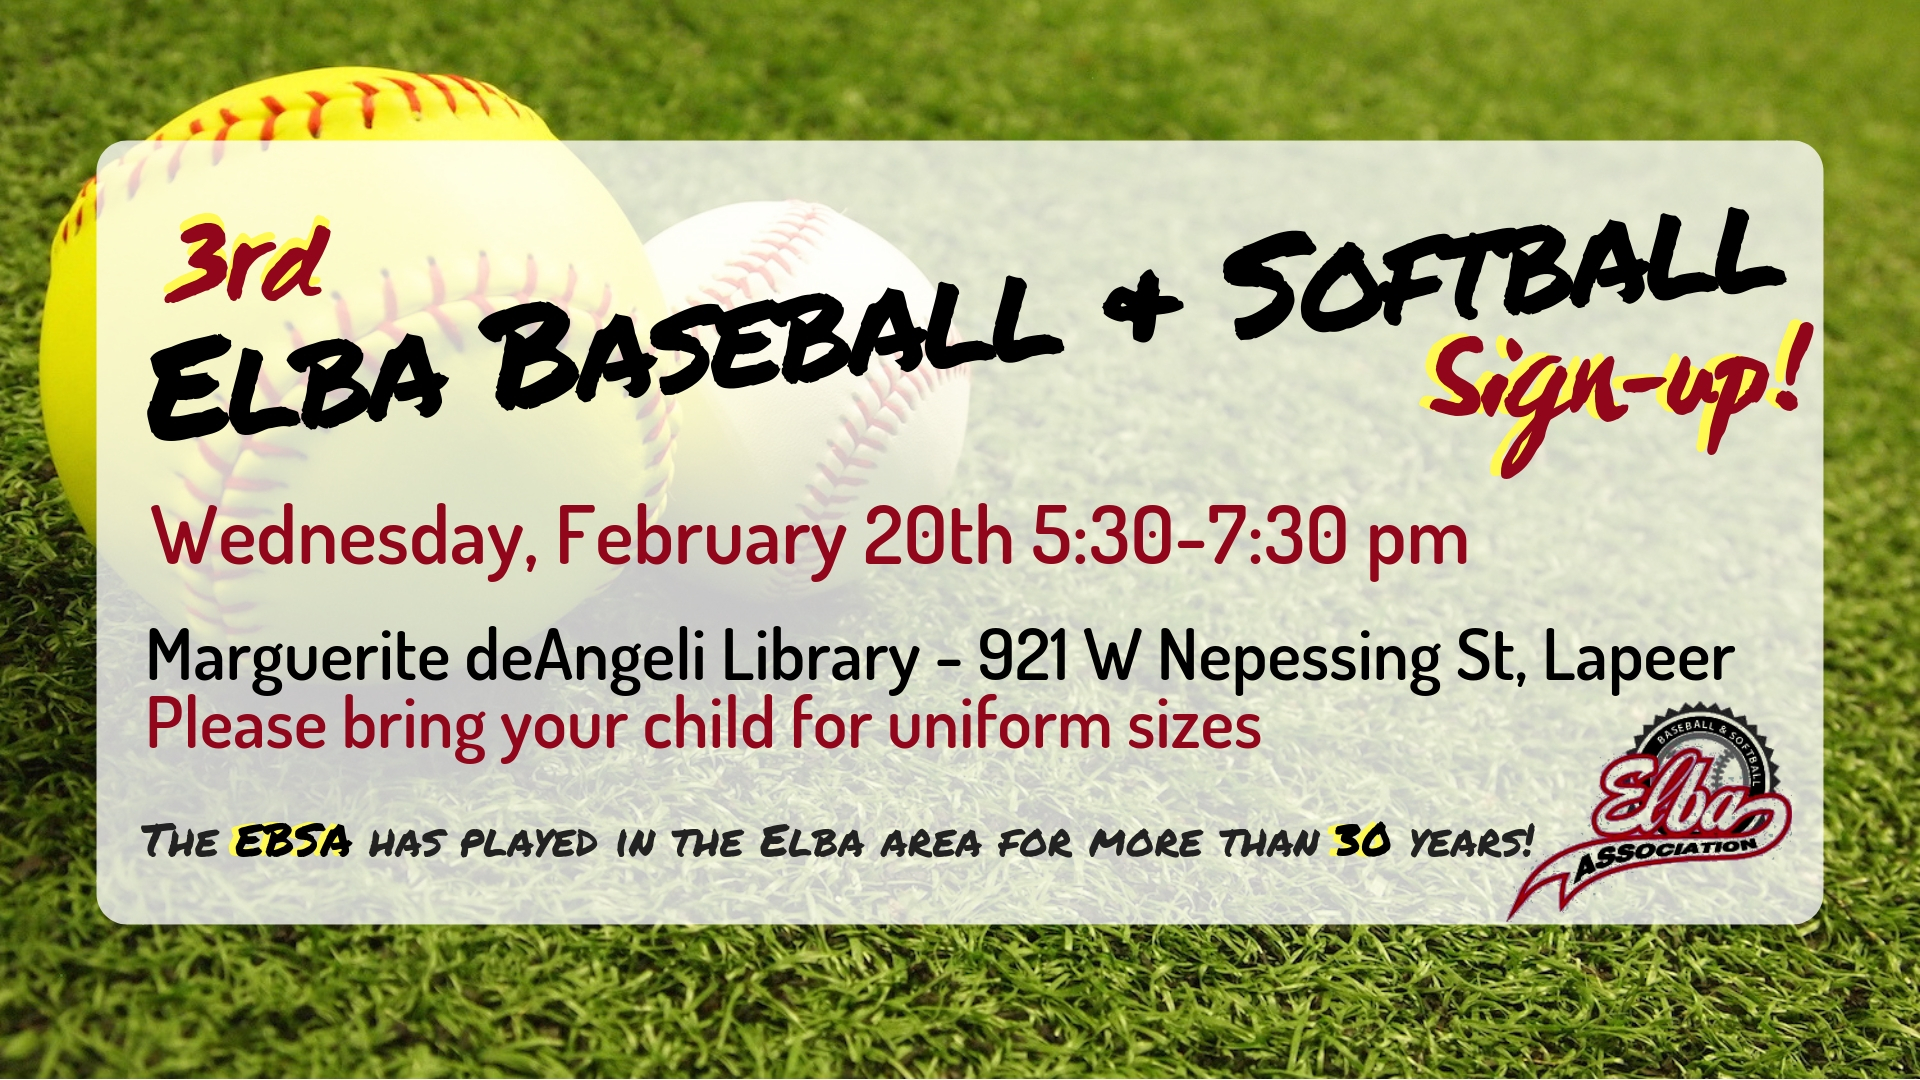 Elba Baseball and Softball sign-up! (3rd)